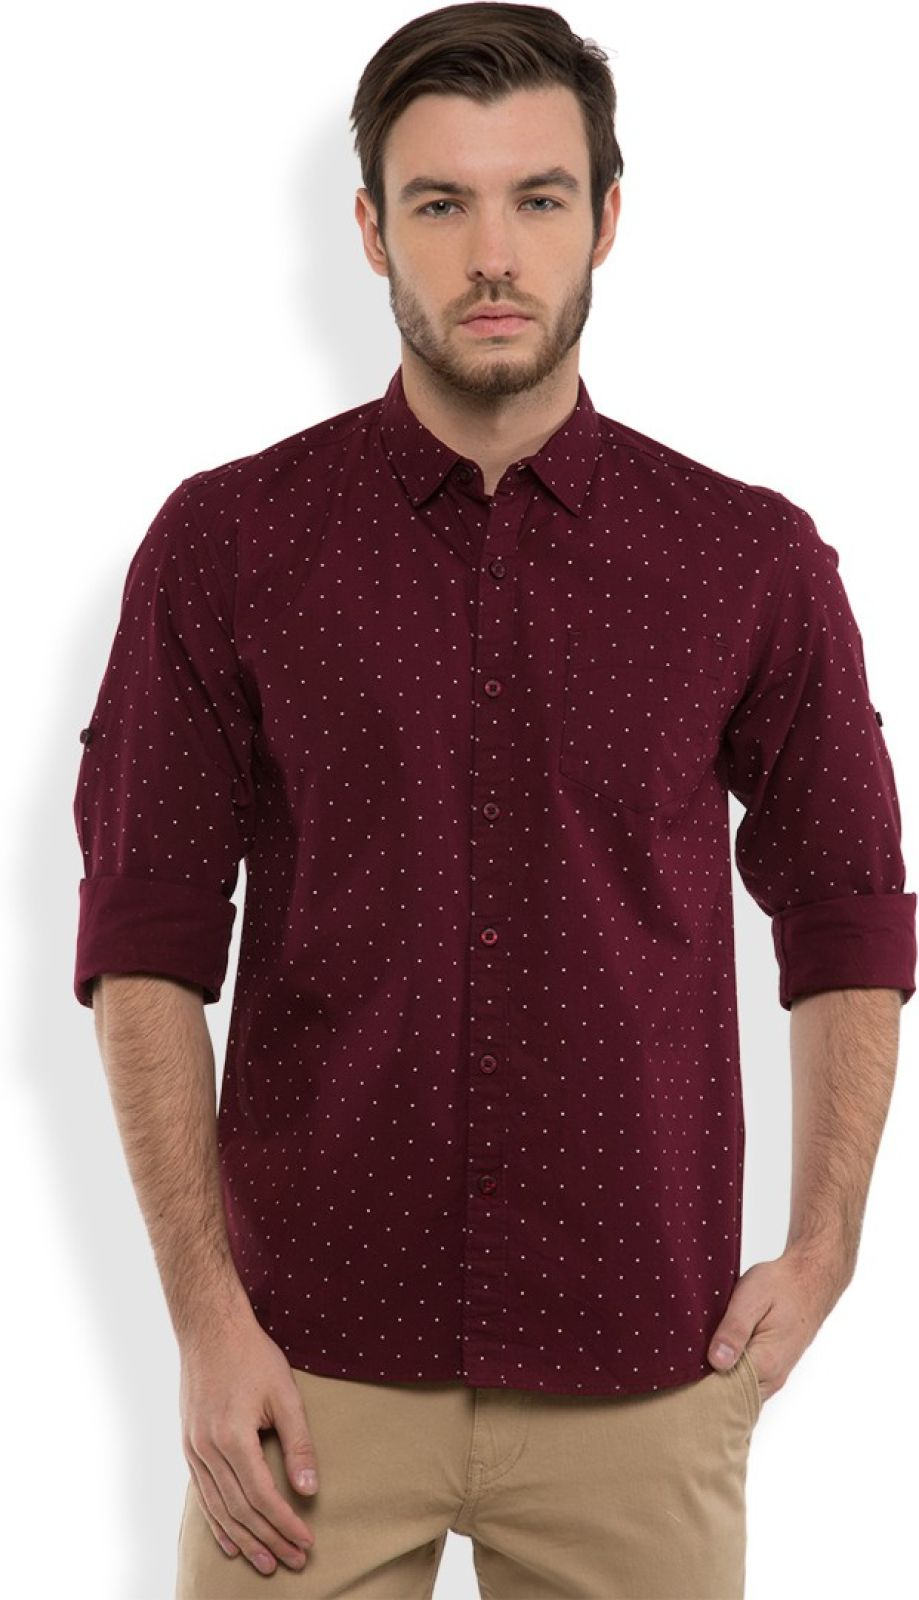 Highlander Men's Printed Casual Maroon, White Shirt